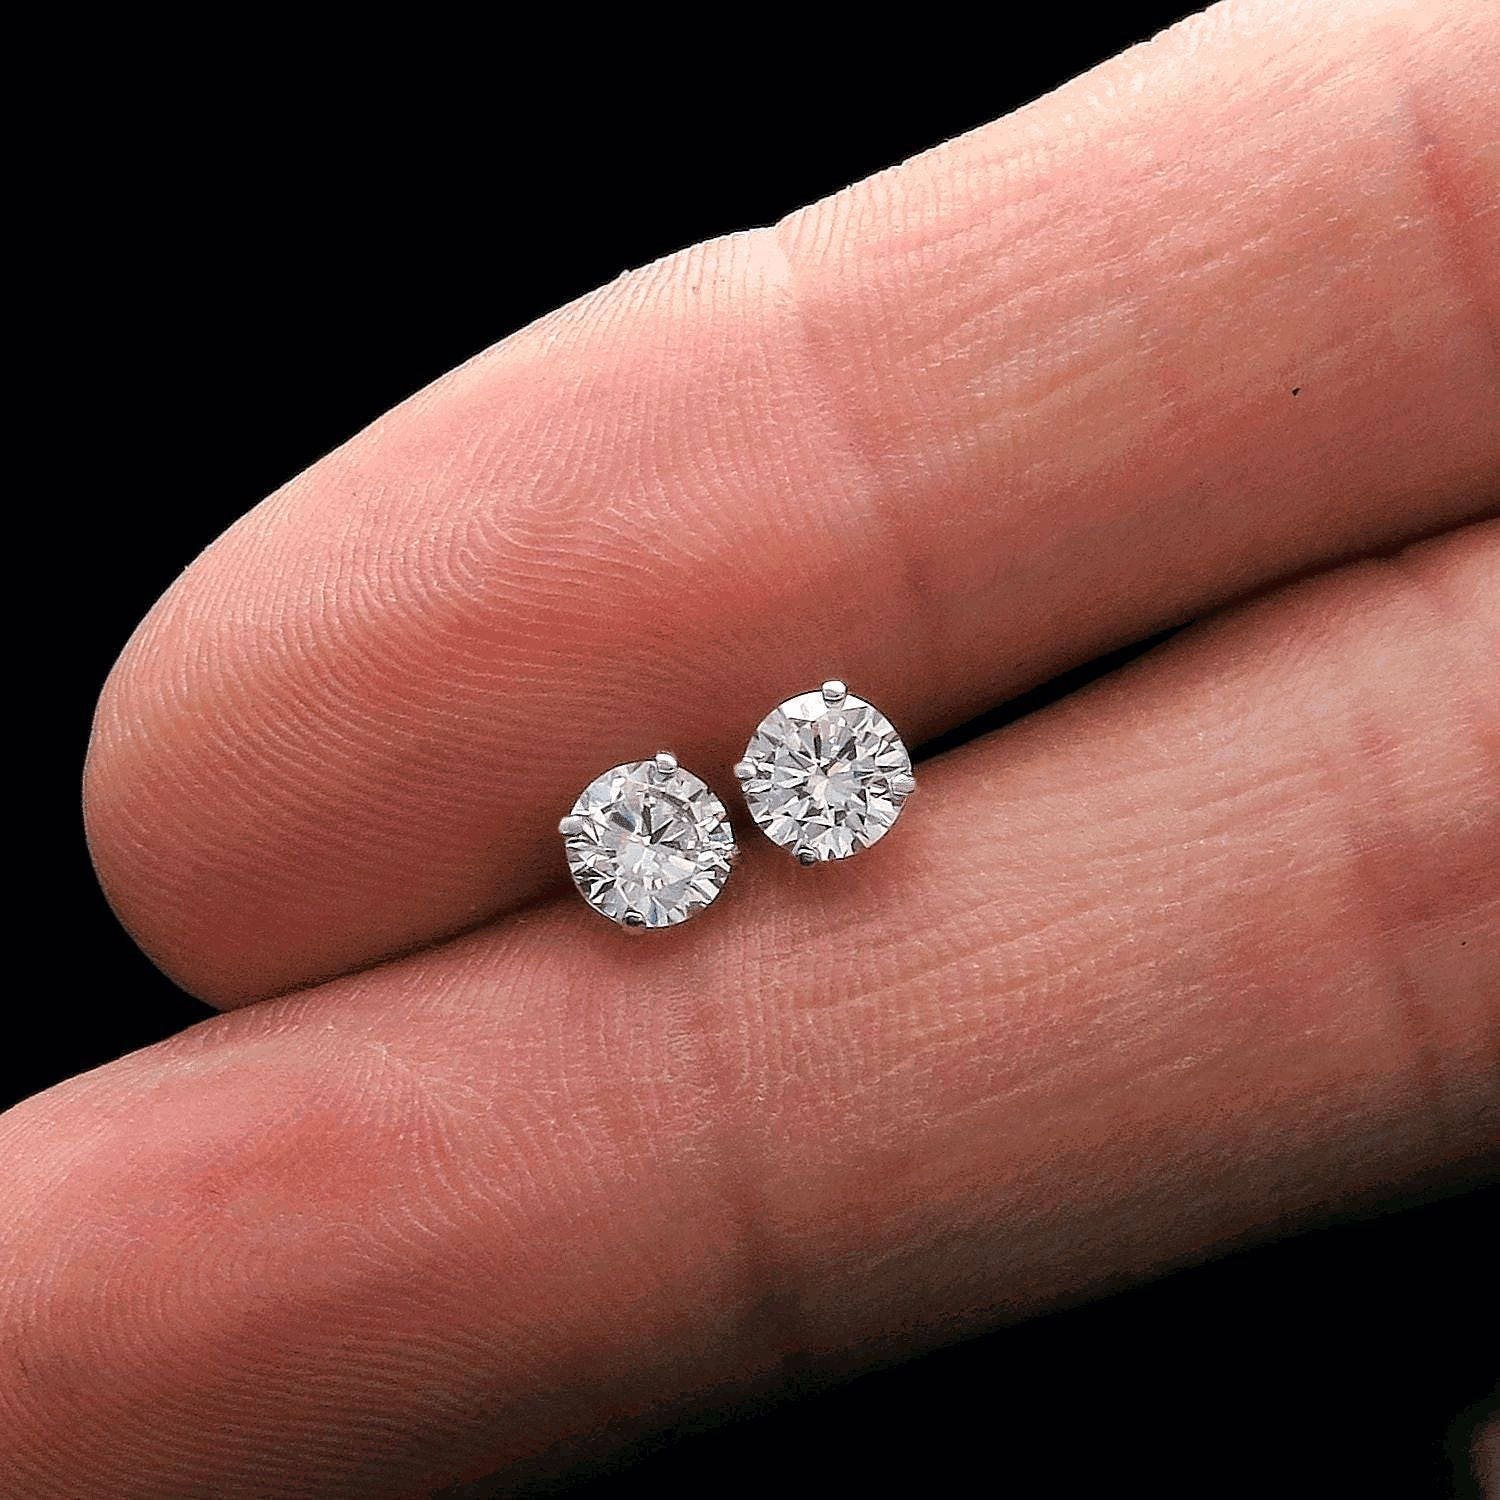 1CT Round Simulated Diamond Solitaire Earrings 14K White Gold Heavy ...